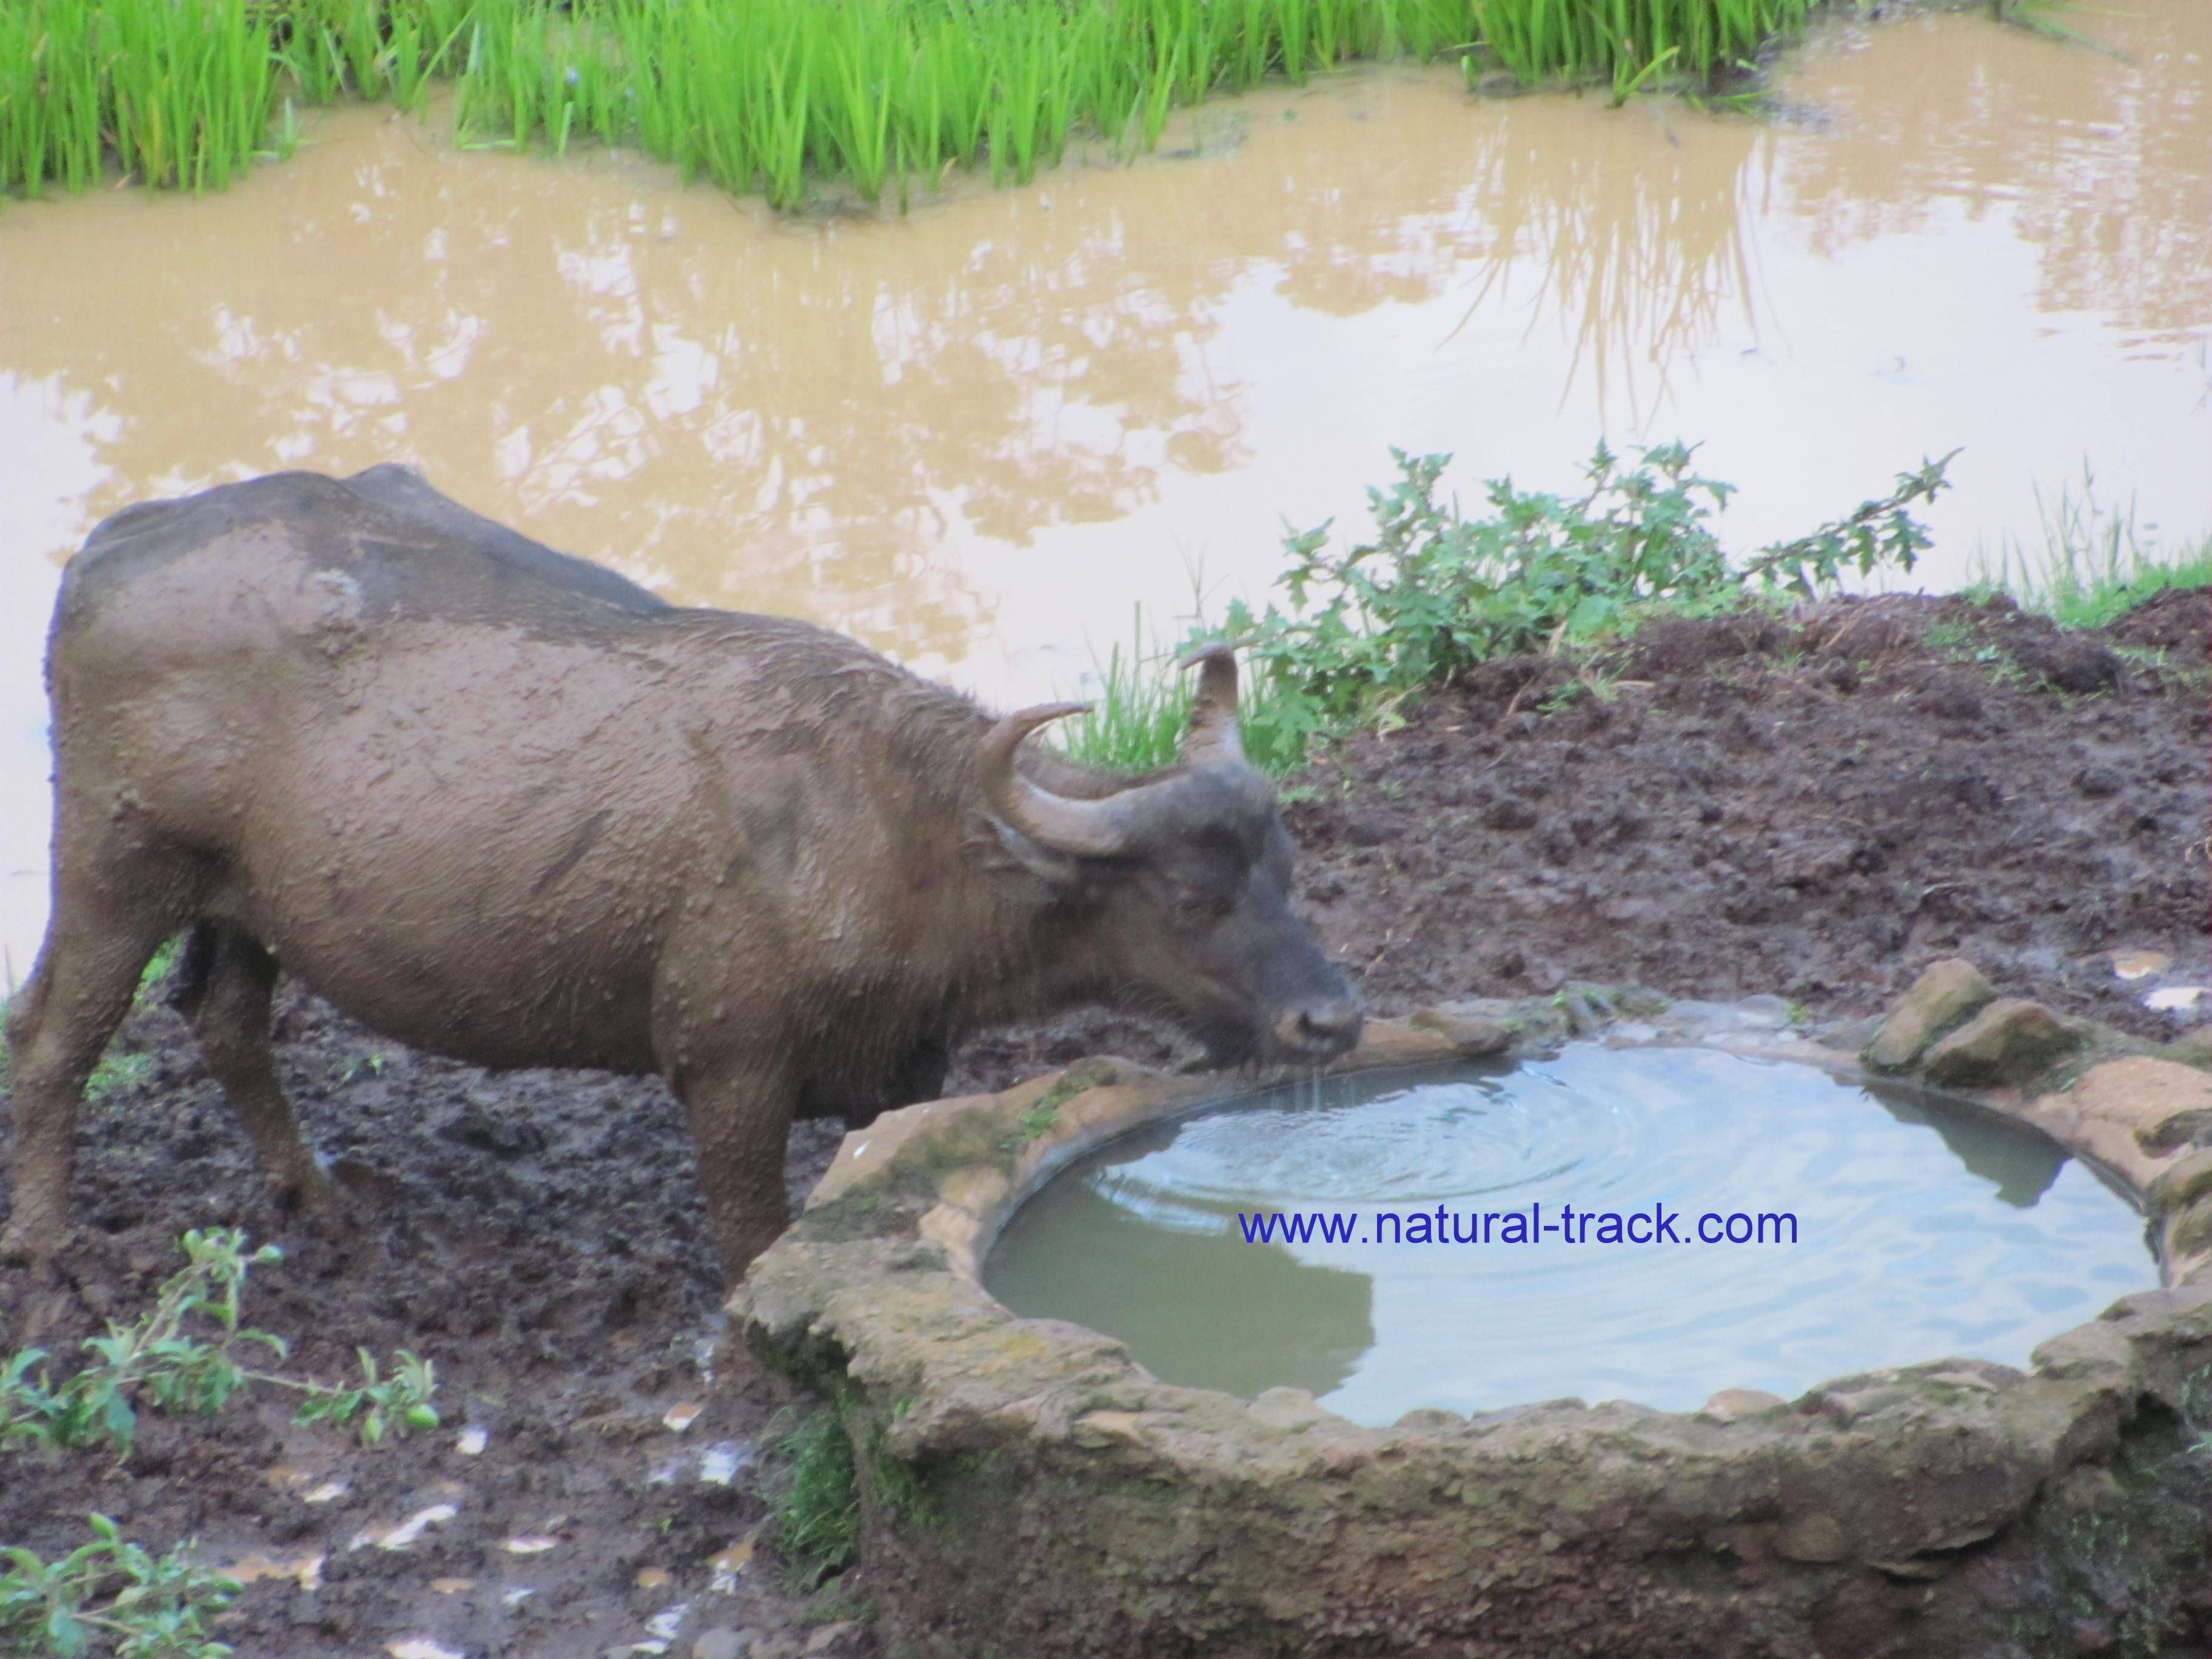 African buffalo drinking water from a small pool of water